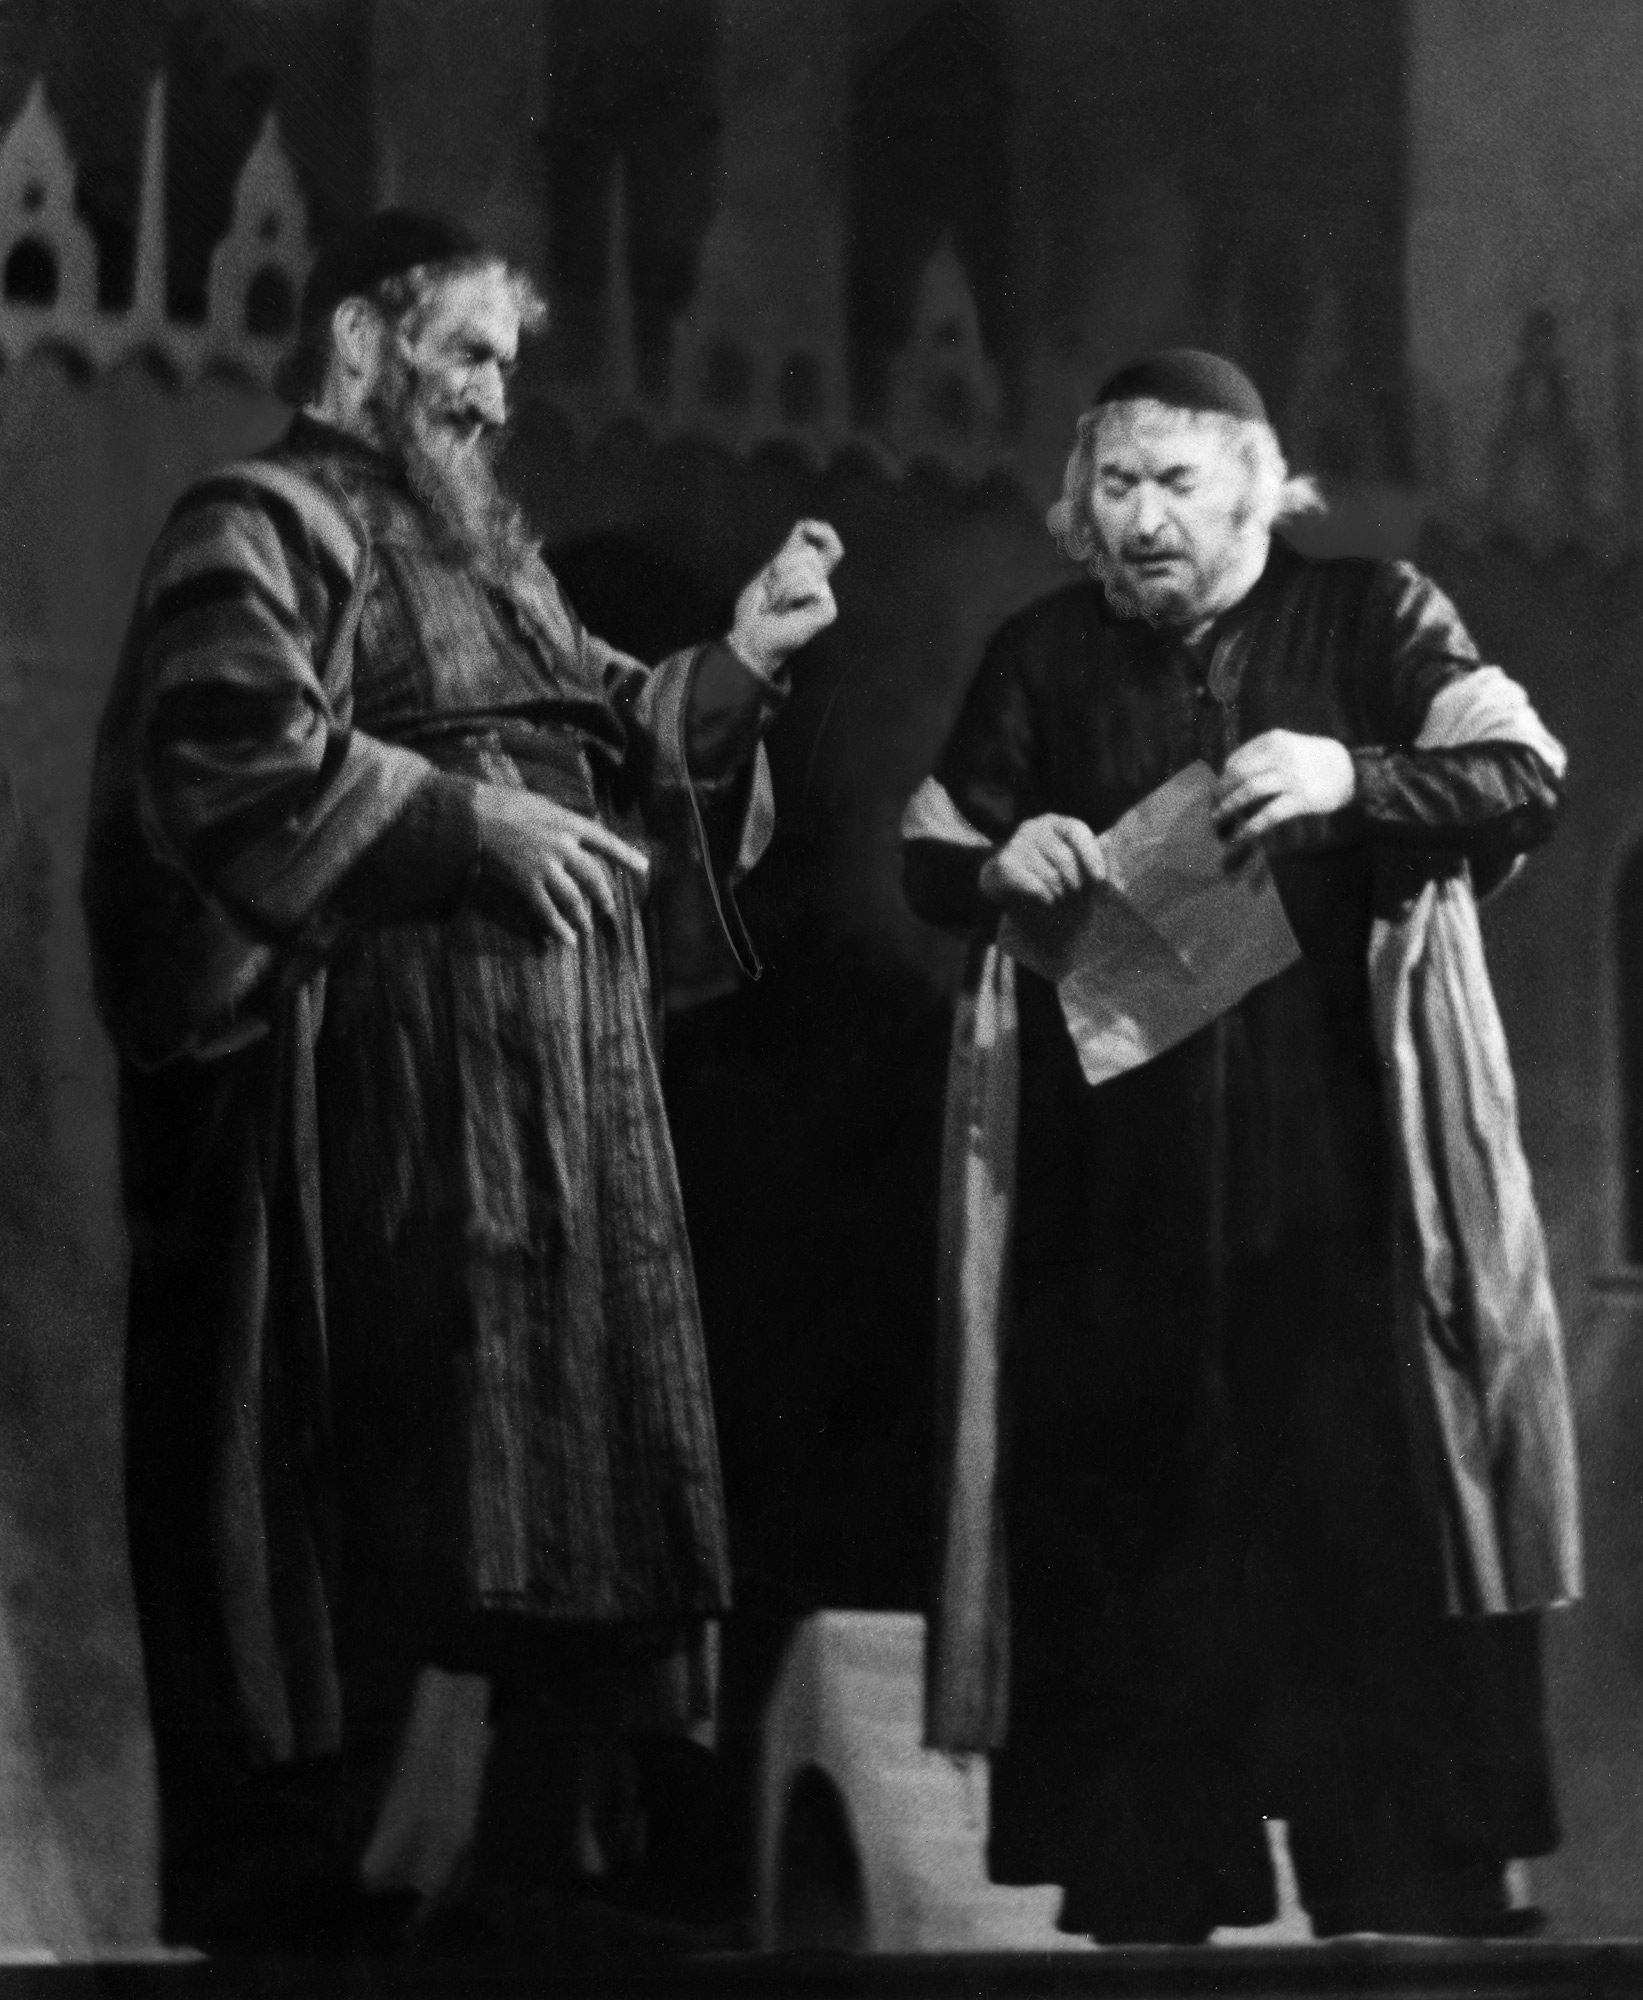 Production photograph of the notorious 1943 production of The Merchant of Venice directed by Nazi Party member, Lothar Muthel